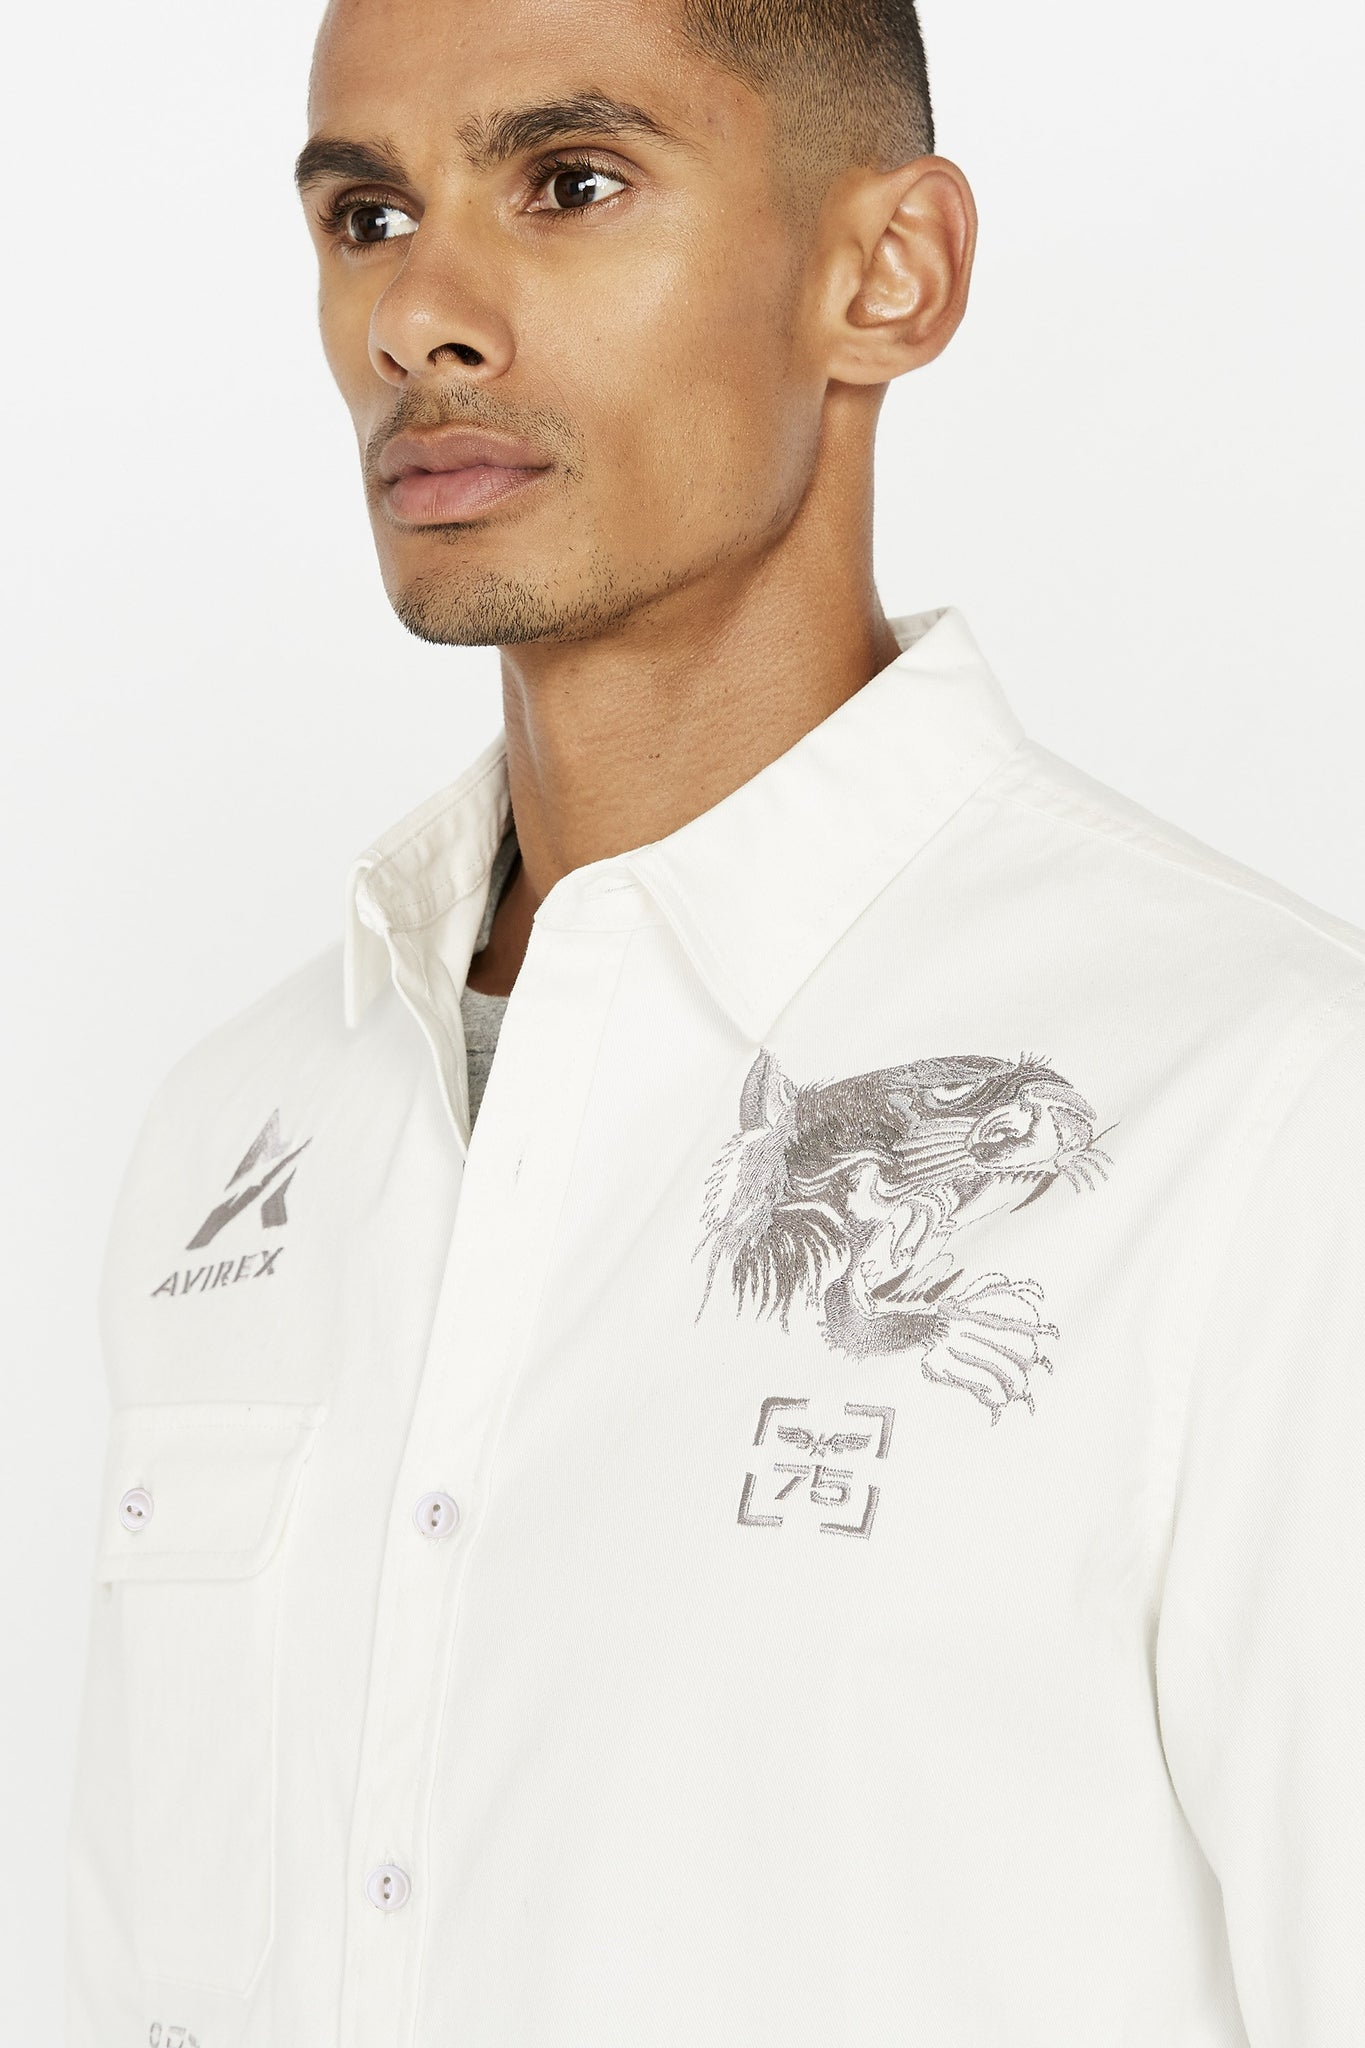 Detailed view of embroidery logo above pocket on right chest and embroidery tiger on the left chest